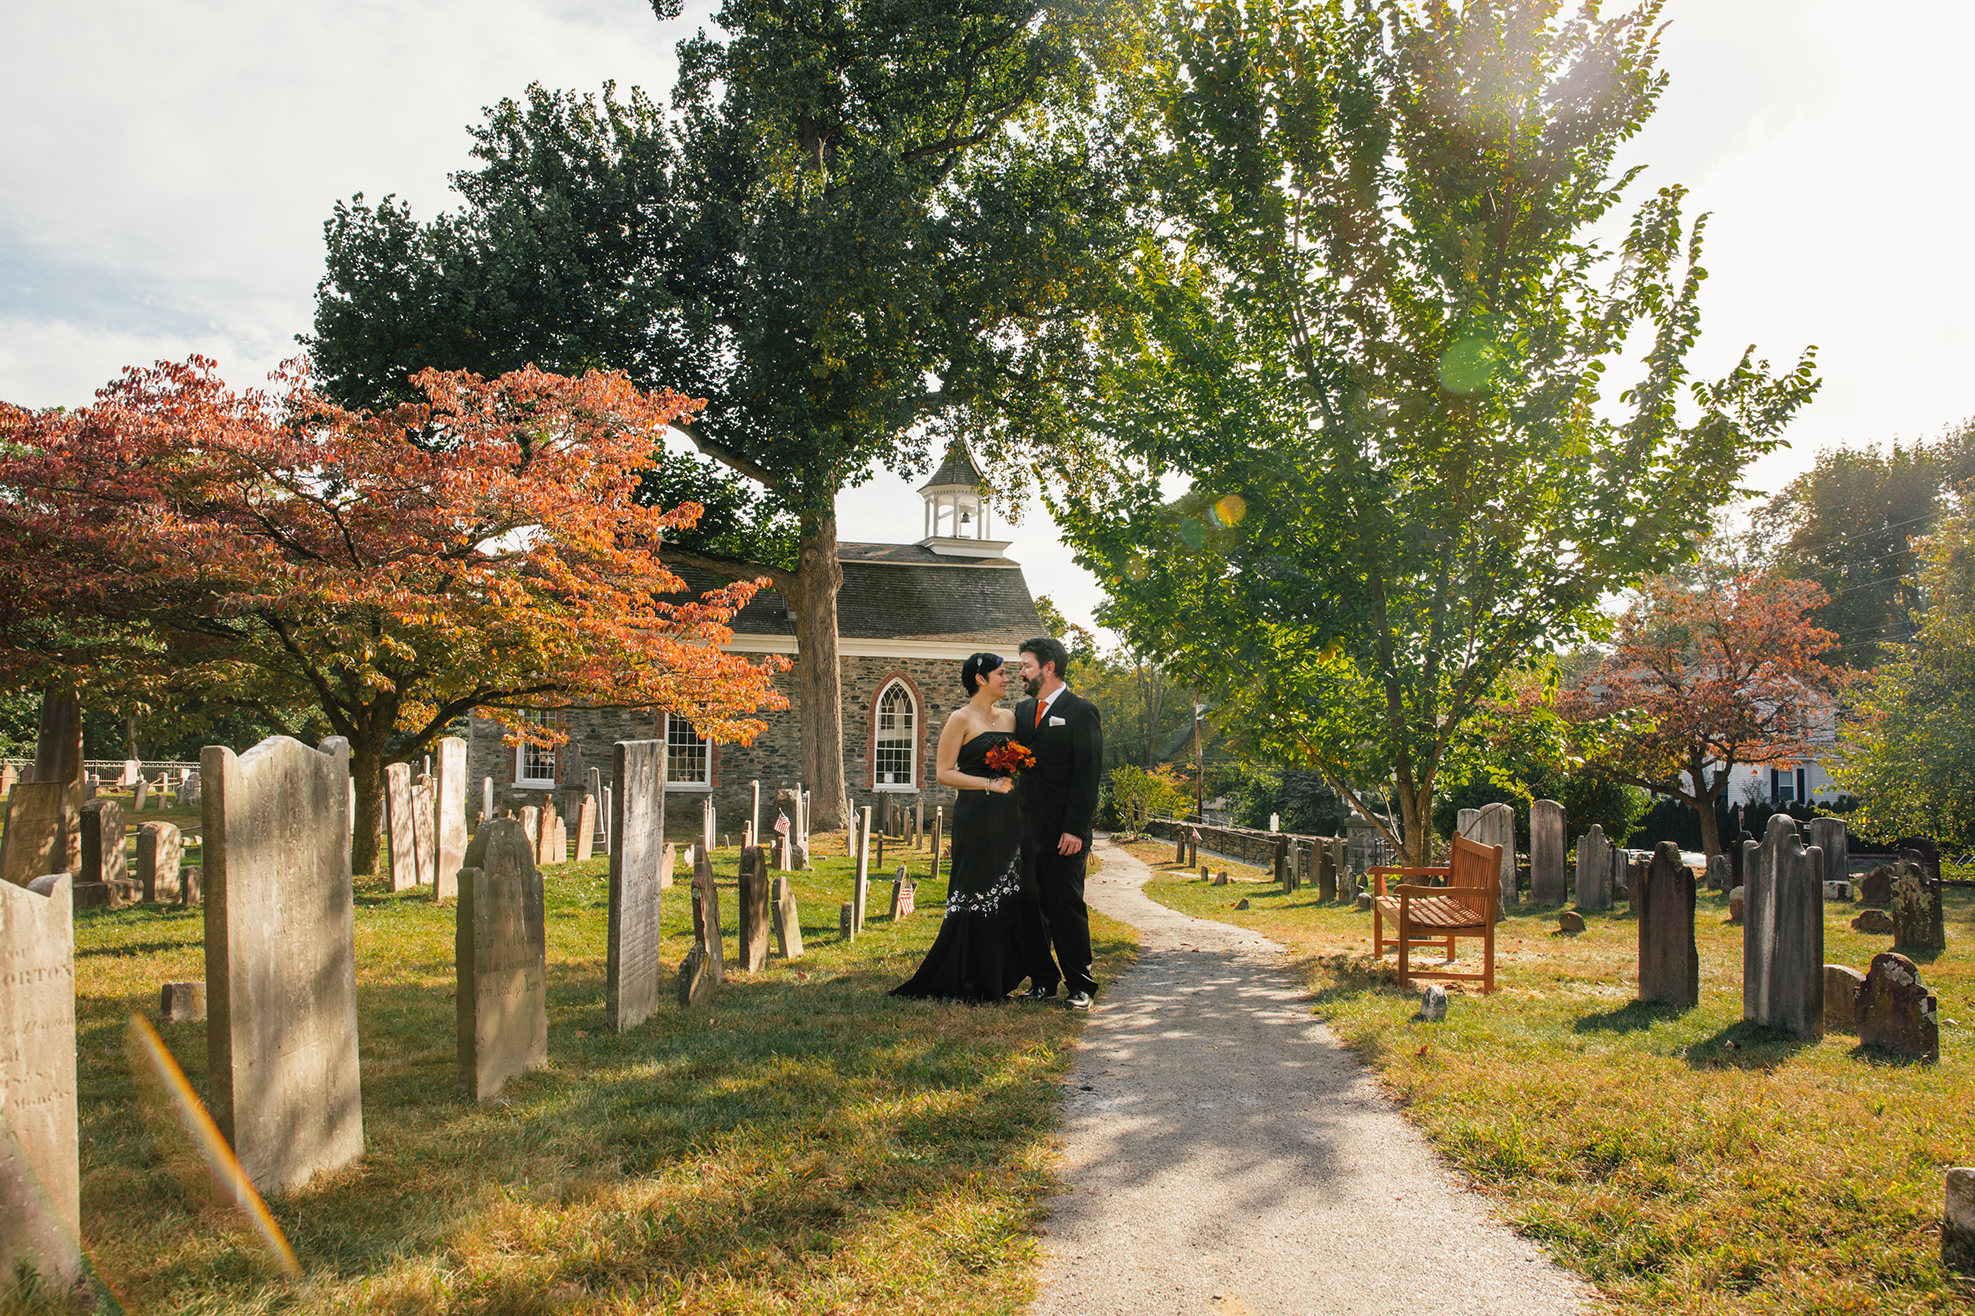 Laura and Michael - 10/6/17 - Old Dutch Church and Sleepy Hollow Village Hall